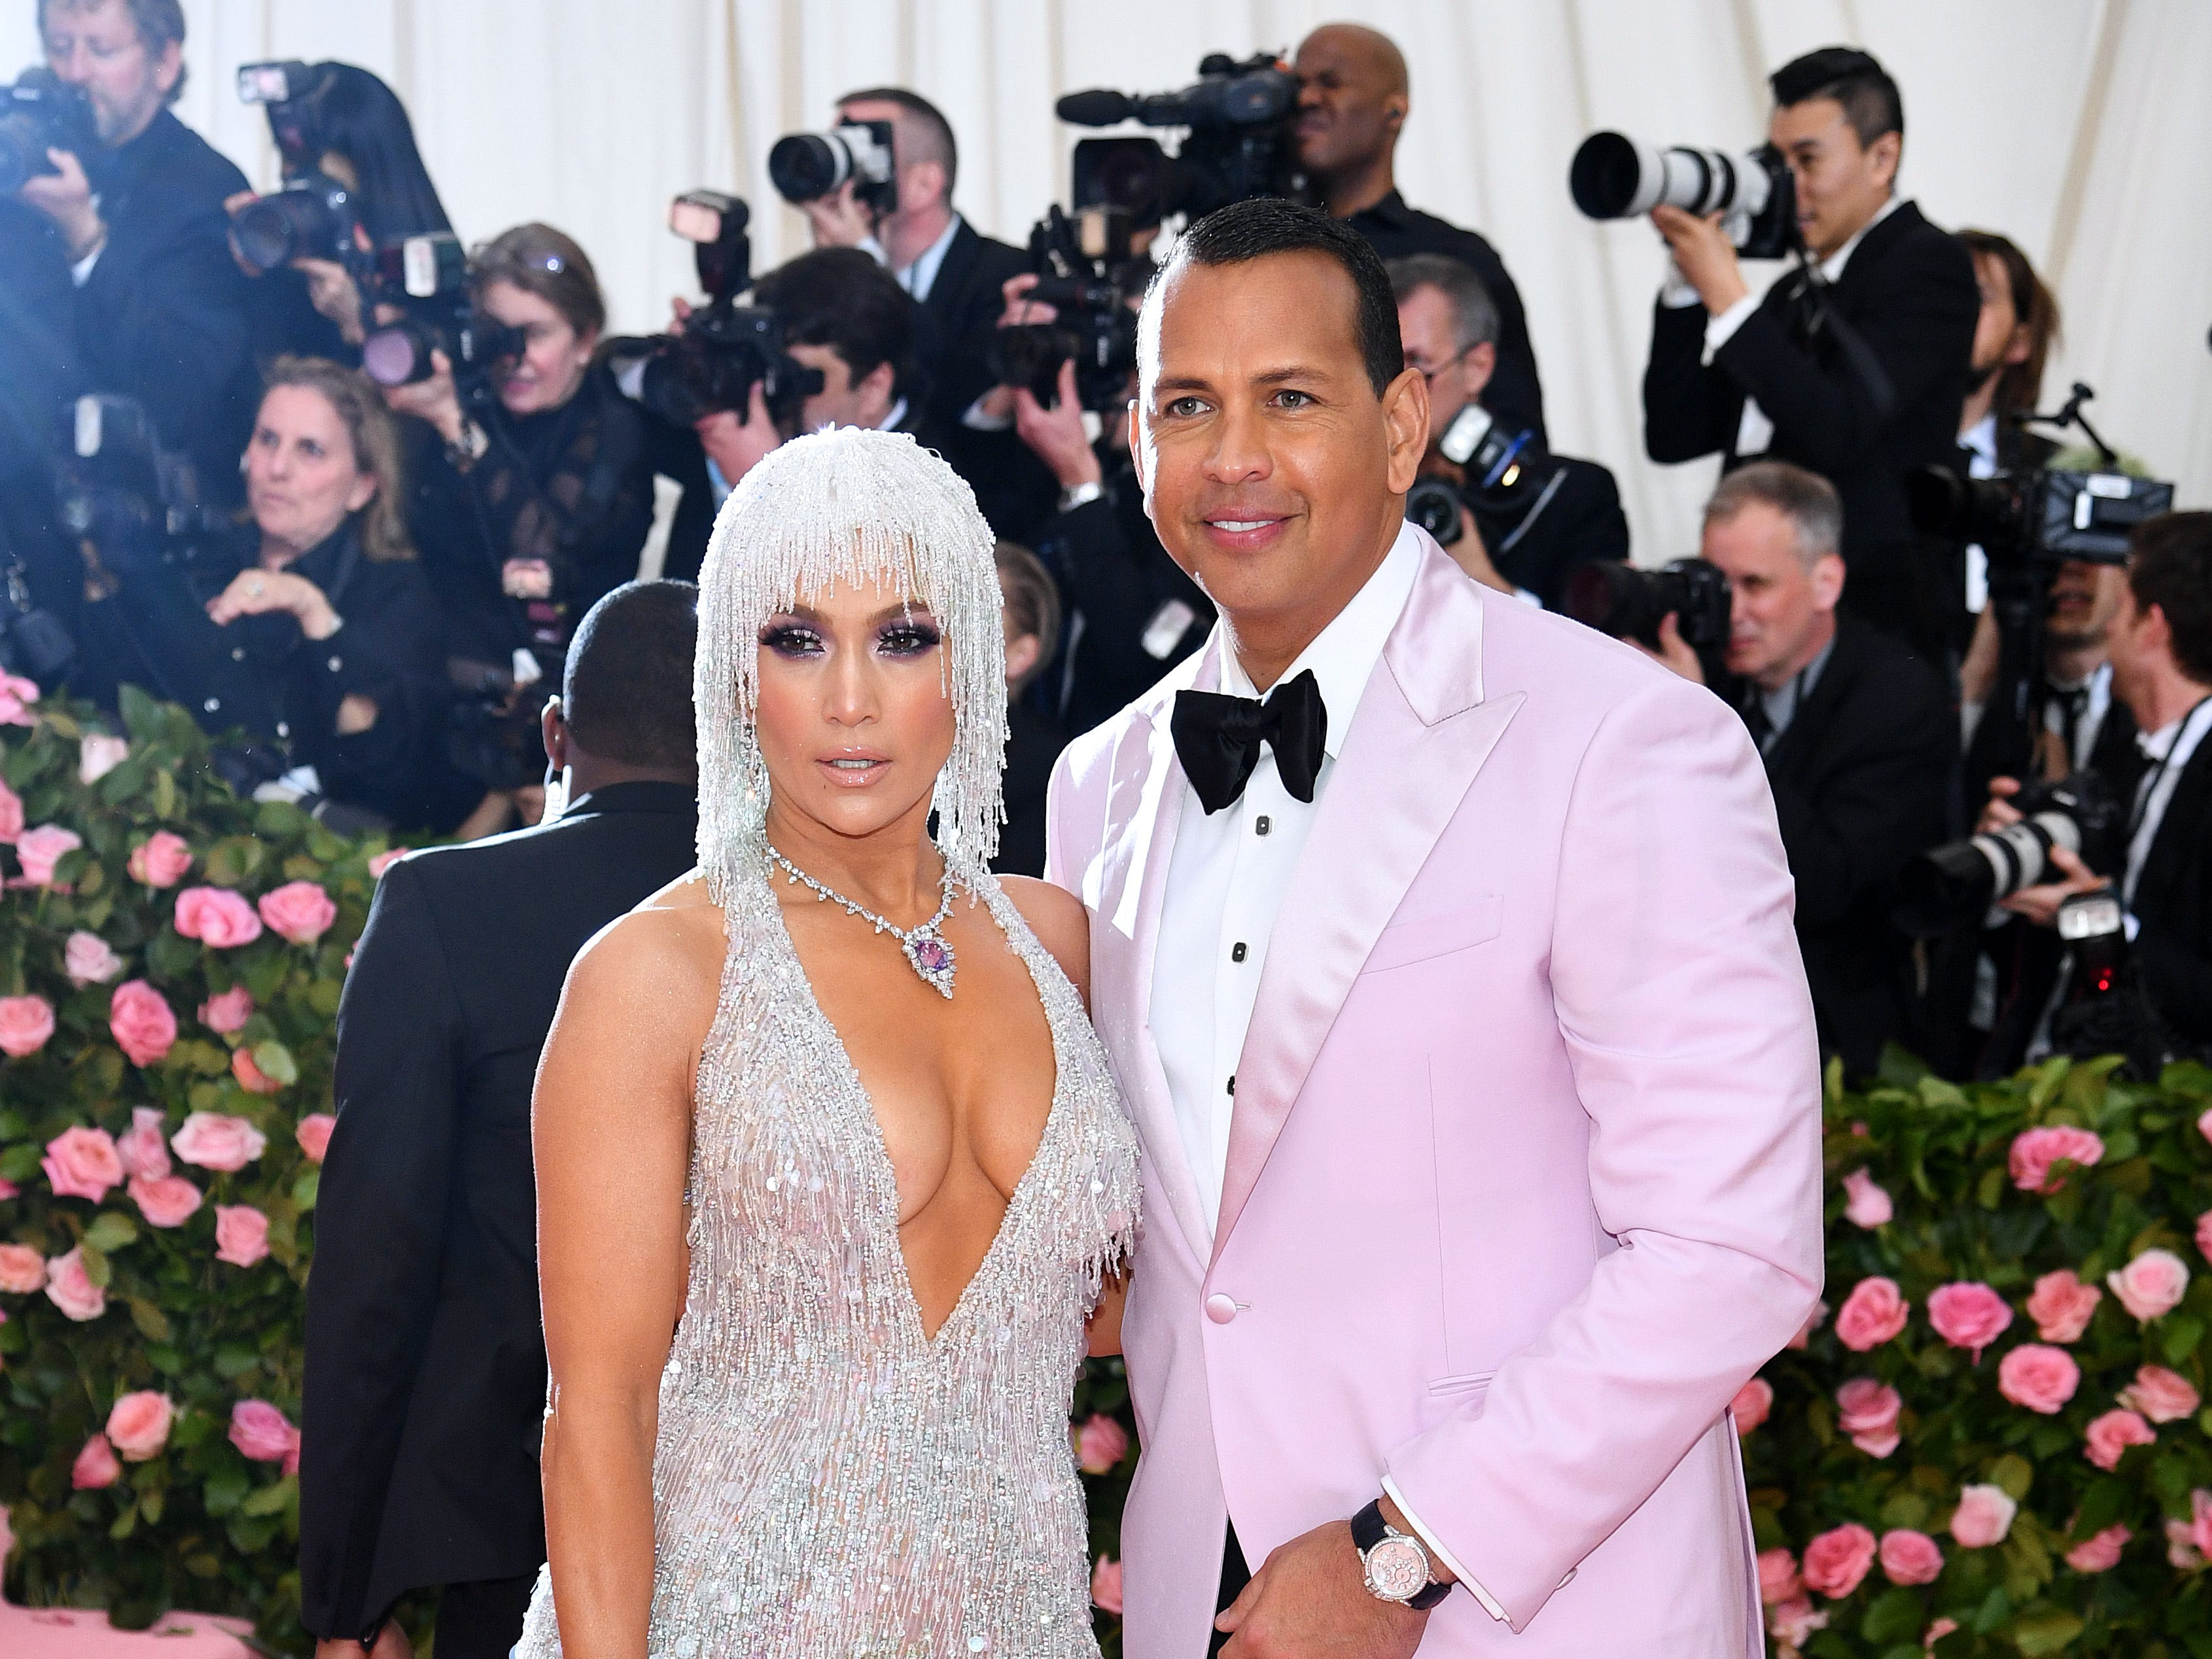 NEW YORK, NEW YORK - MAY 06: Jennifer Lopez and Alex Rodriguez attend The 2019 Met Gala Celebrating Camp: Notes on Fashion at Metropolitan Museum of Art on May 06, 2019 in New York City. (Photo by Dimitrios Kambouris/Getty Images for The Met Museum/Vogue) ORG XMIT: 775333959 ORIG FILE ID: 1147431617